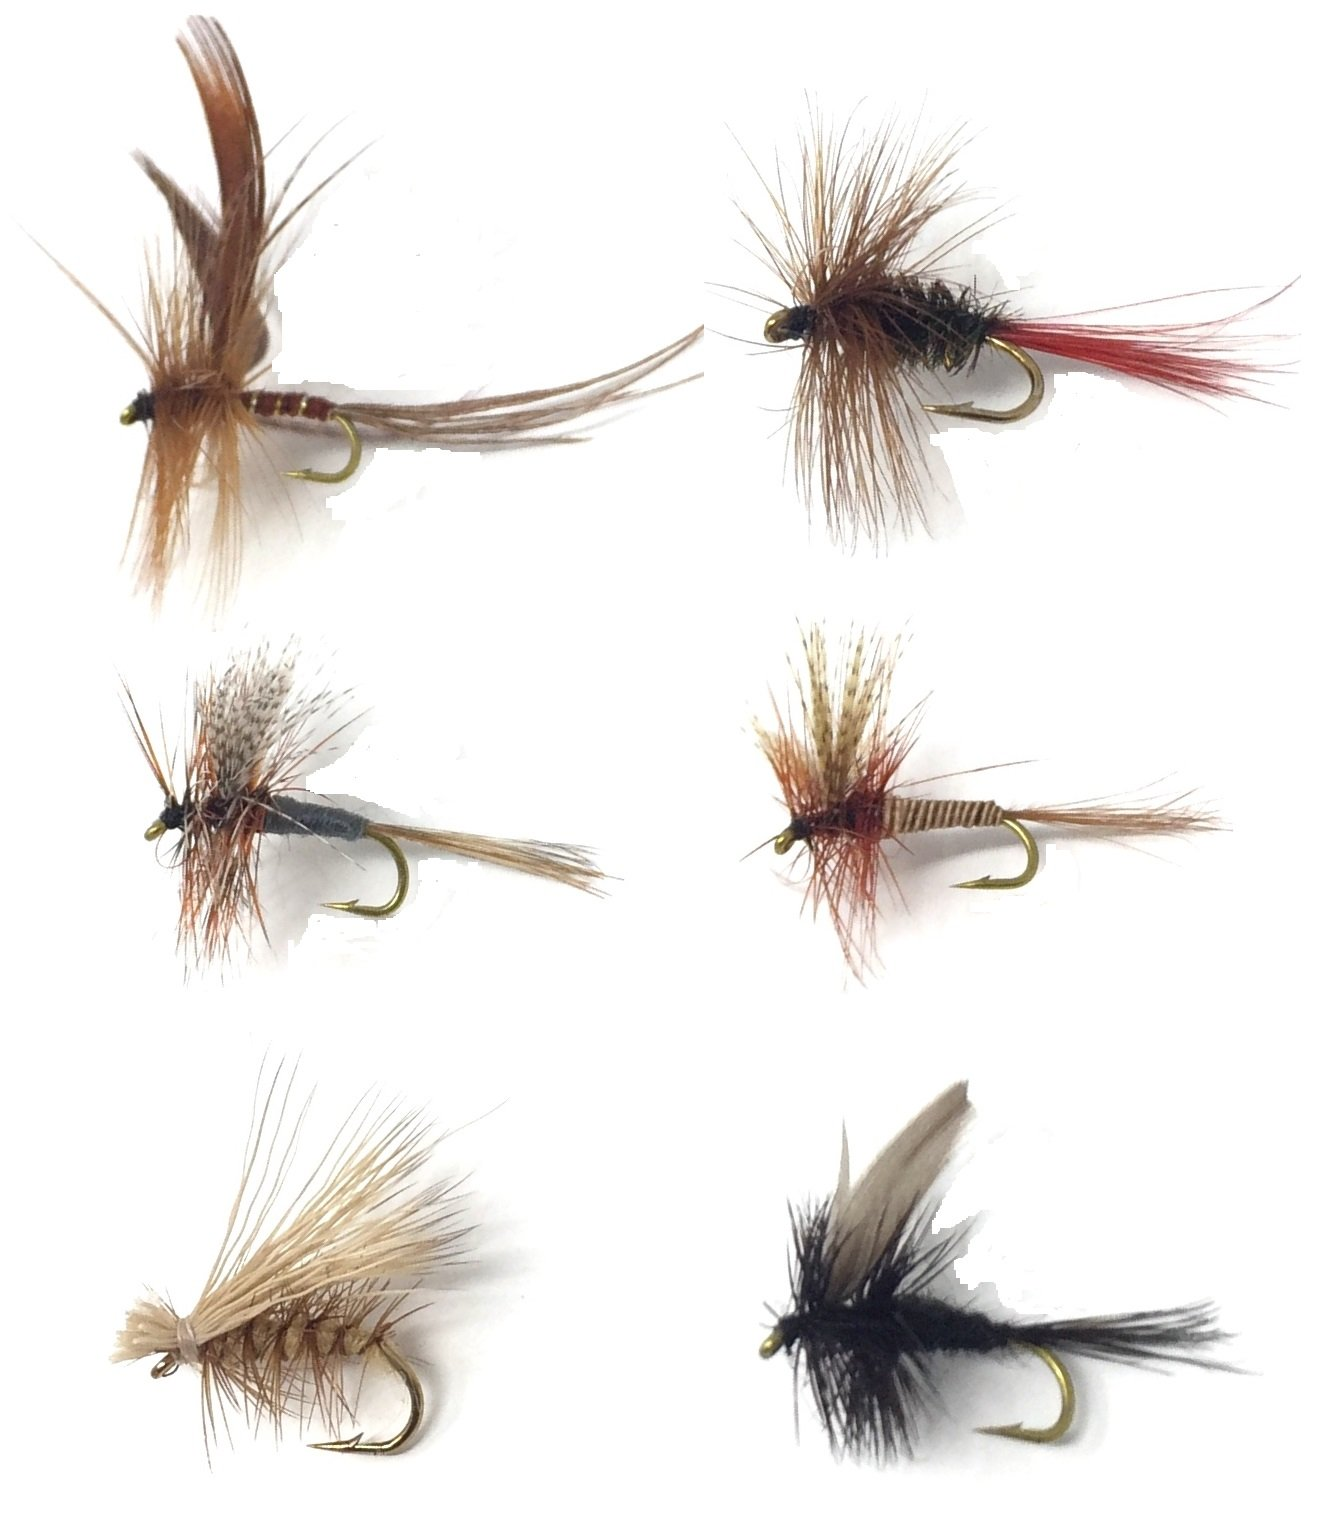 Feeder Creek Fly Fishing Trout Flies - Popular MAYFLIES - 18 Flies - 6 Patterns (3 of Each Size and Pattern) Red Quill, Elk Caddis Brown, Brown Hackle, Black Gnat, Grey Fox, Drake - Sizes 14-16